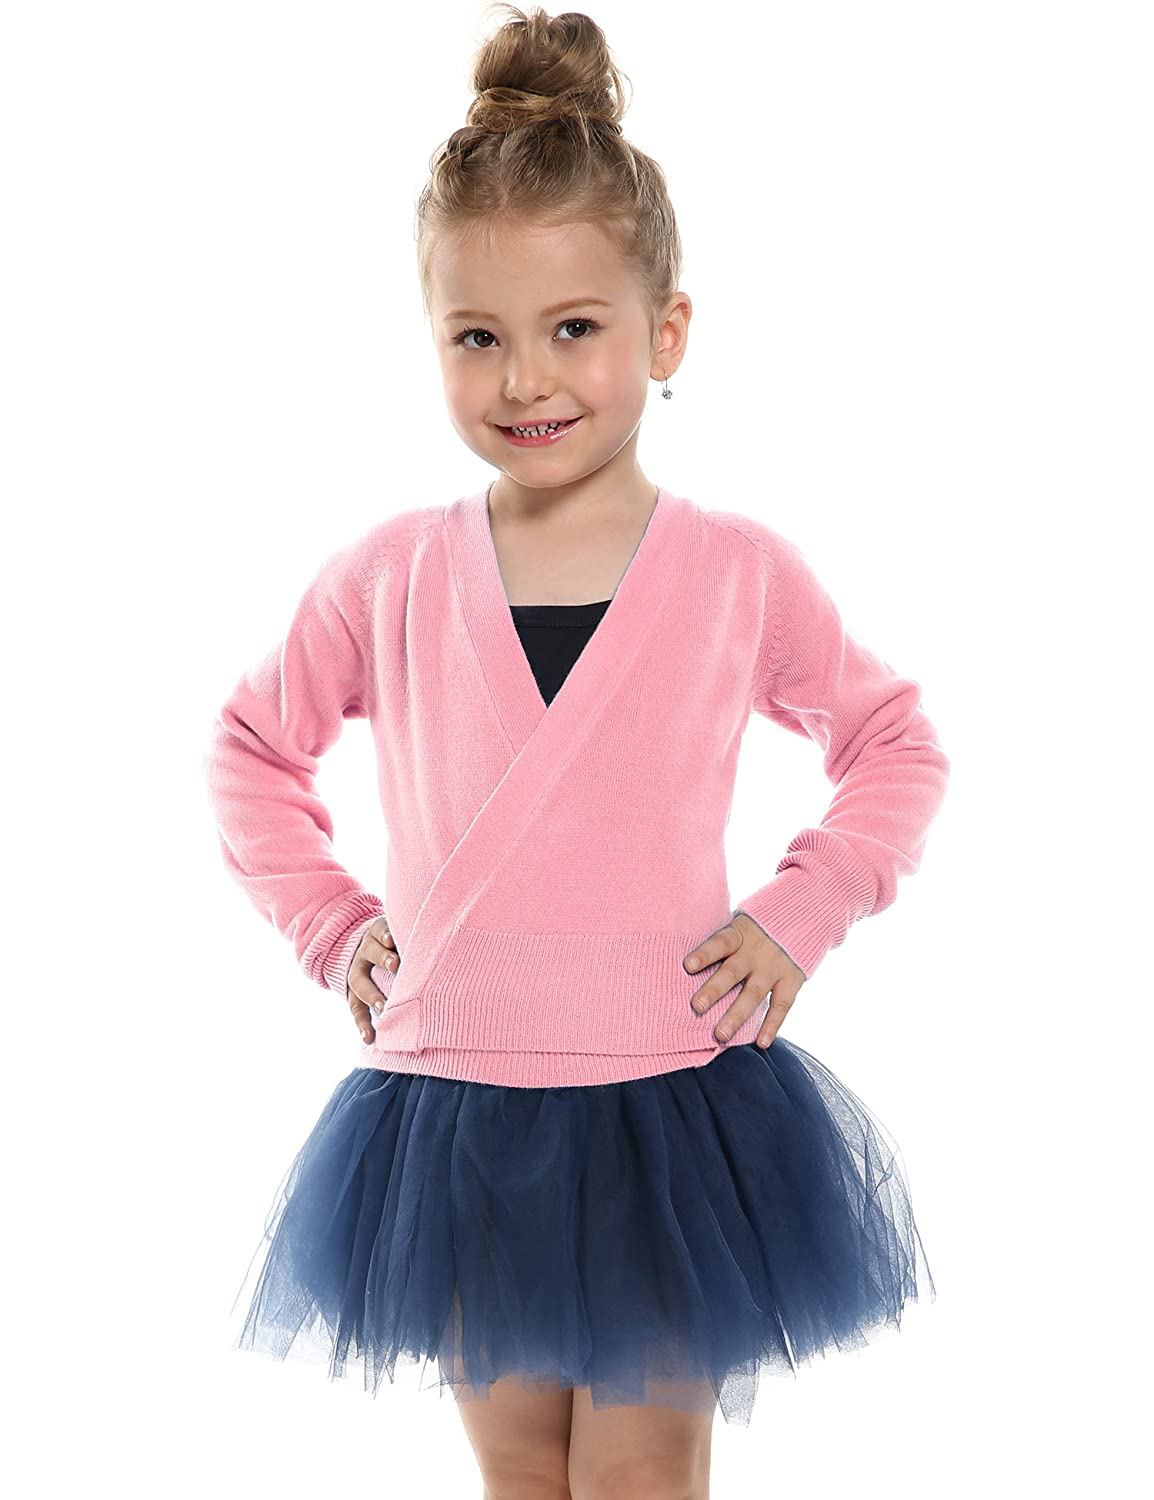 Arshiner Little Girls Cardigans Classic Knit Wrap Sweater Wrap Top